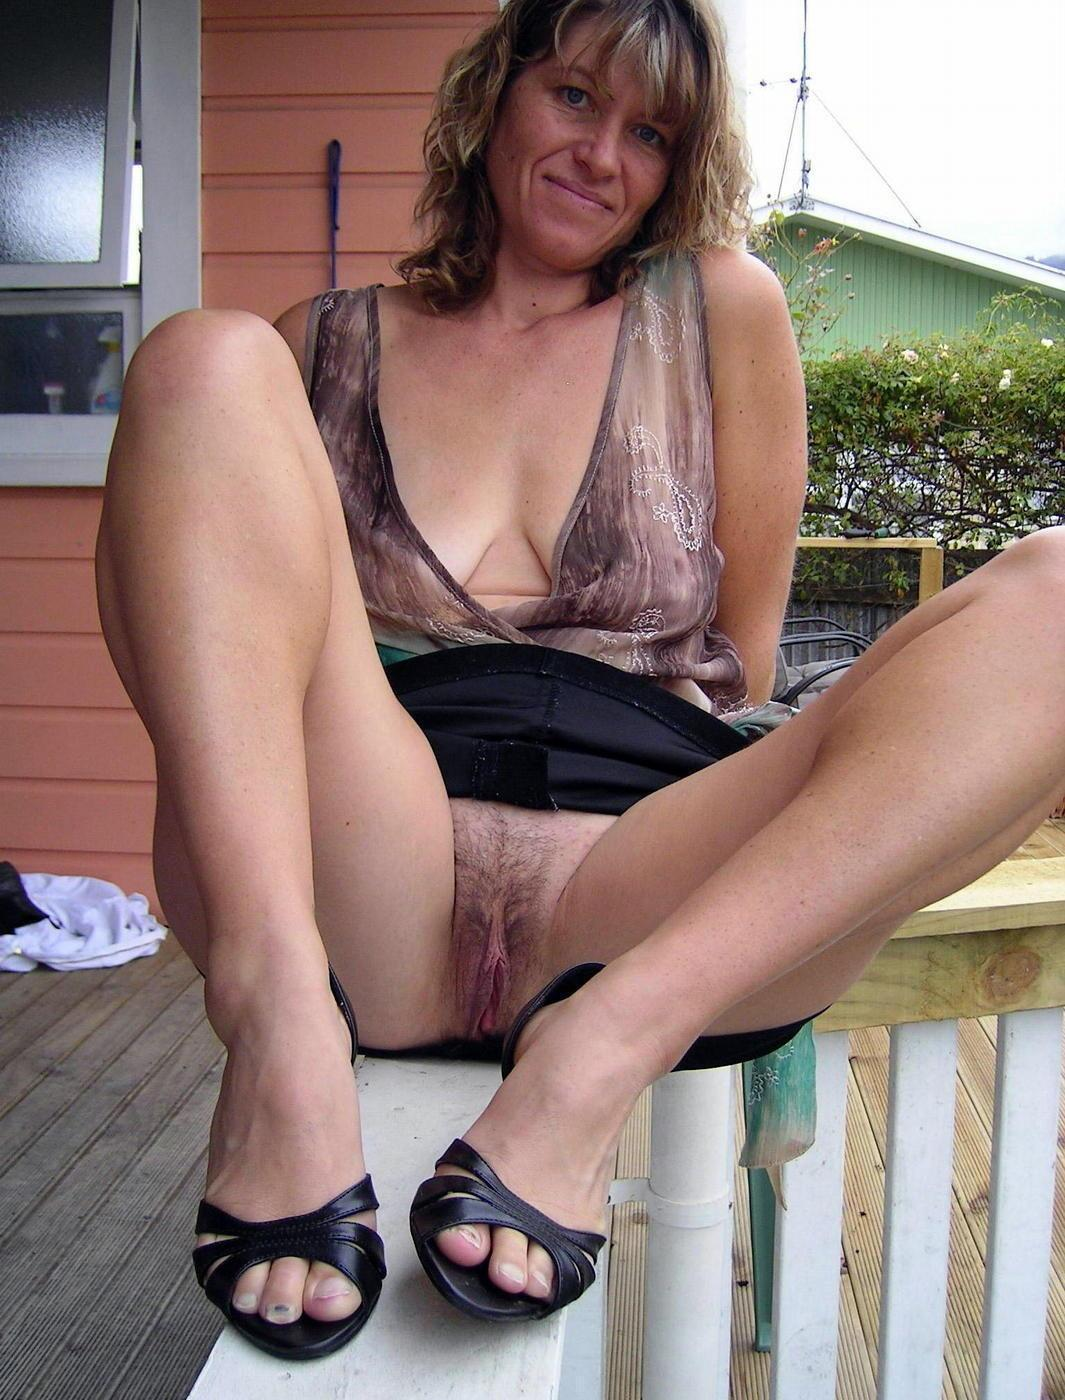 Mature upskirt shots